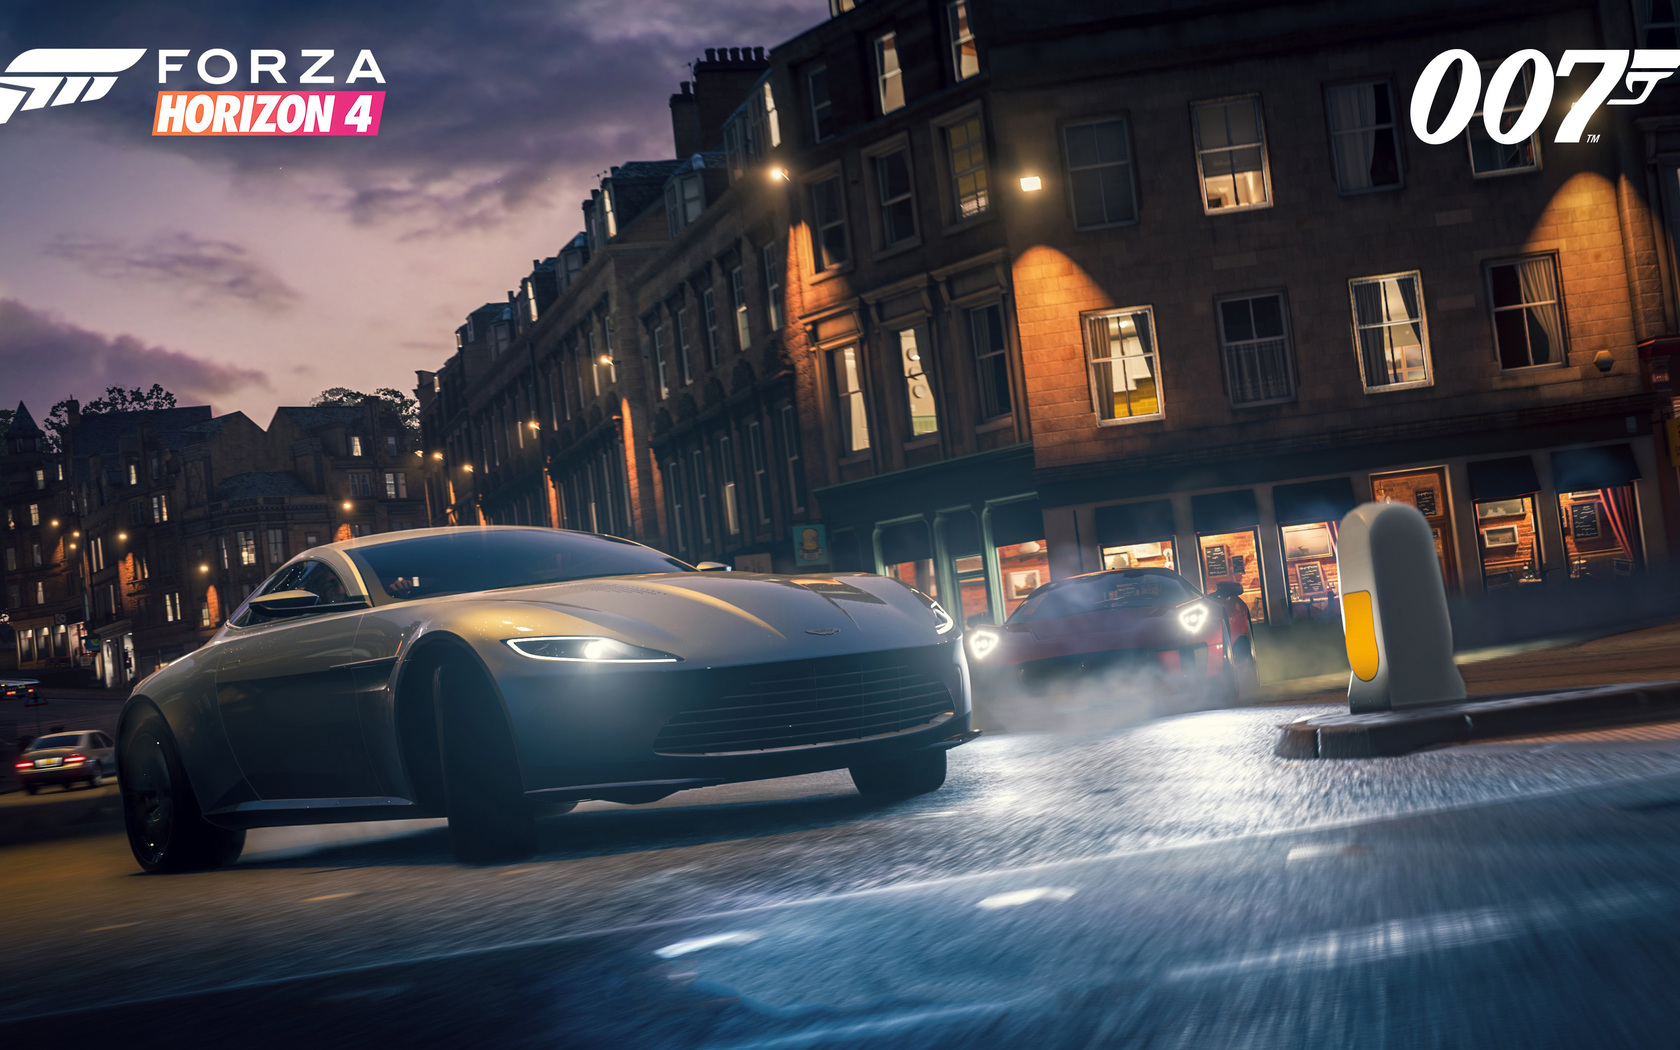 1680x1050 Forza Horizon 4 Aston Martin Db10 4k 1680x1050 Resolution Hd 4k Wallpapers Images Backgrounds Photos And Pictures